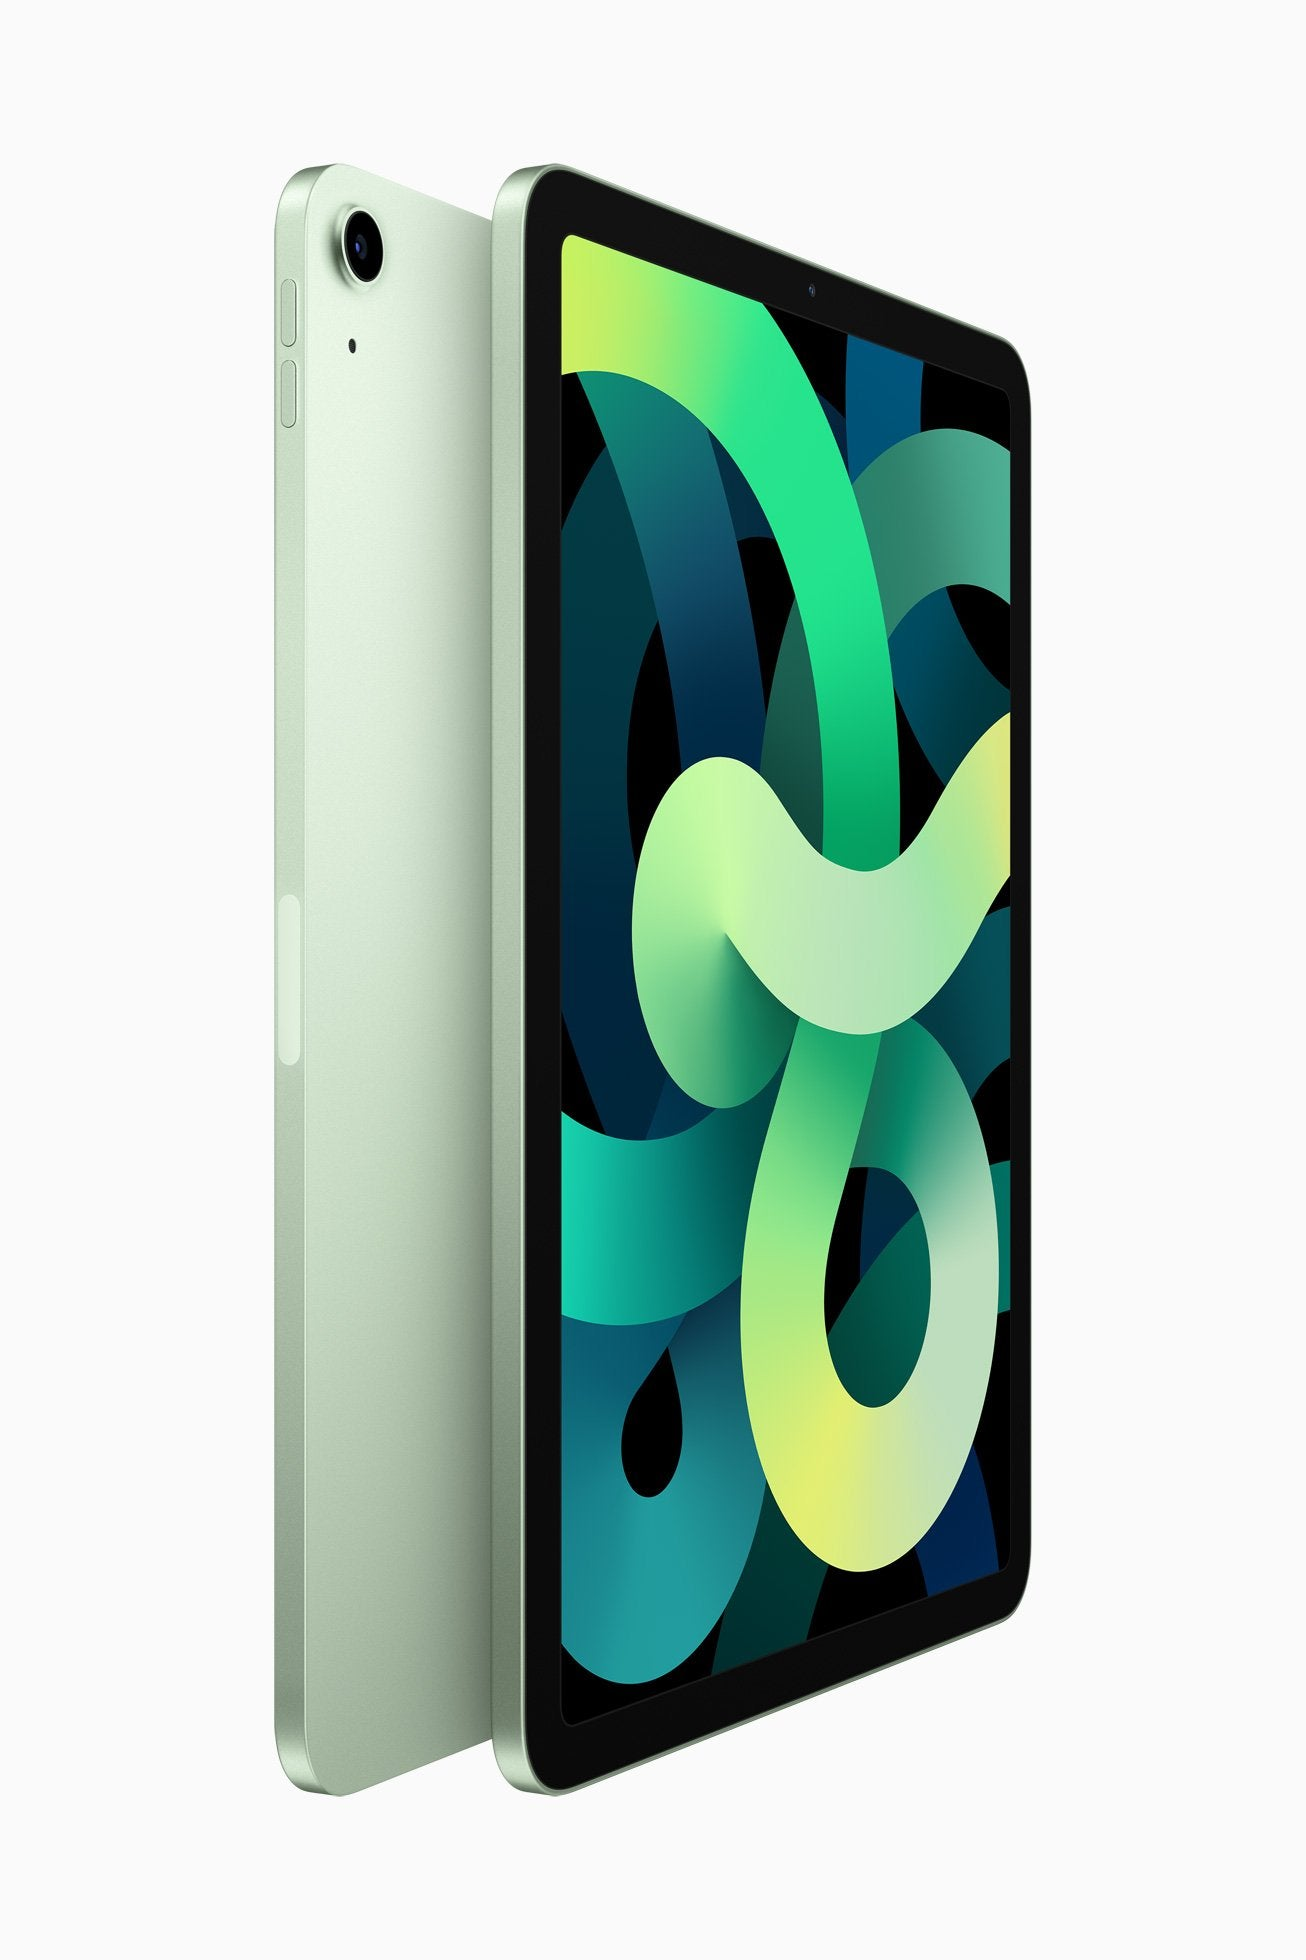 iPad Air 2020 (10.9-inch, WiFi and cellular, 64GB) -Latest Model - iStock BD